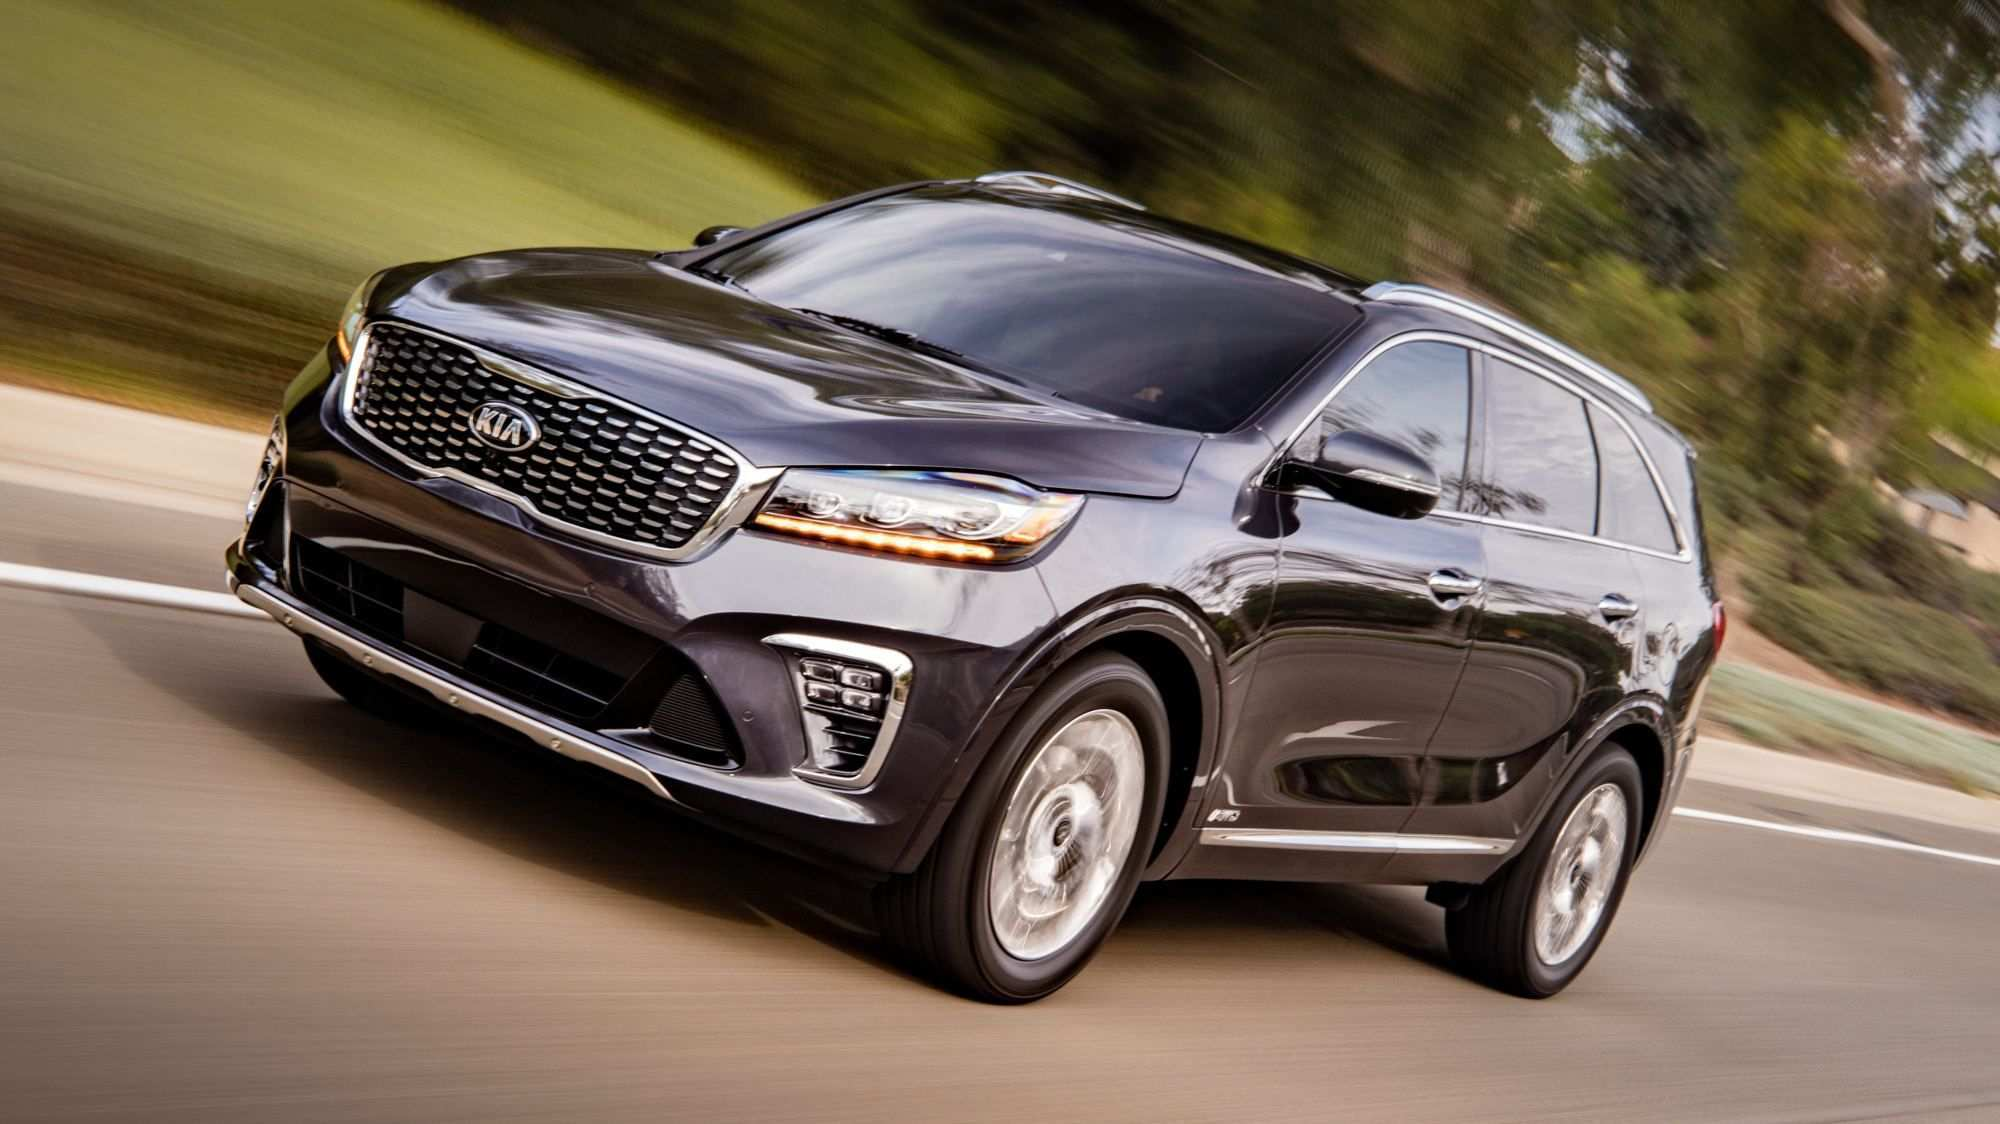 92 New Kia Sorento 2020 Gt Line Performance for Kia Sorento 2020 Gt Line